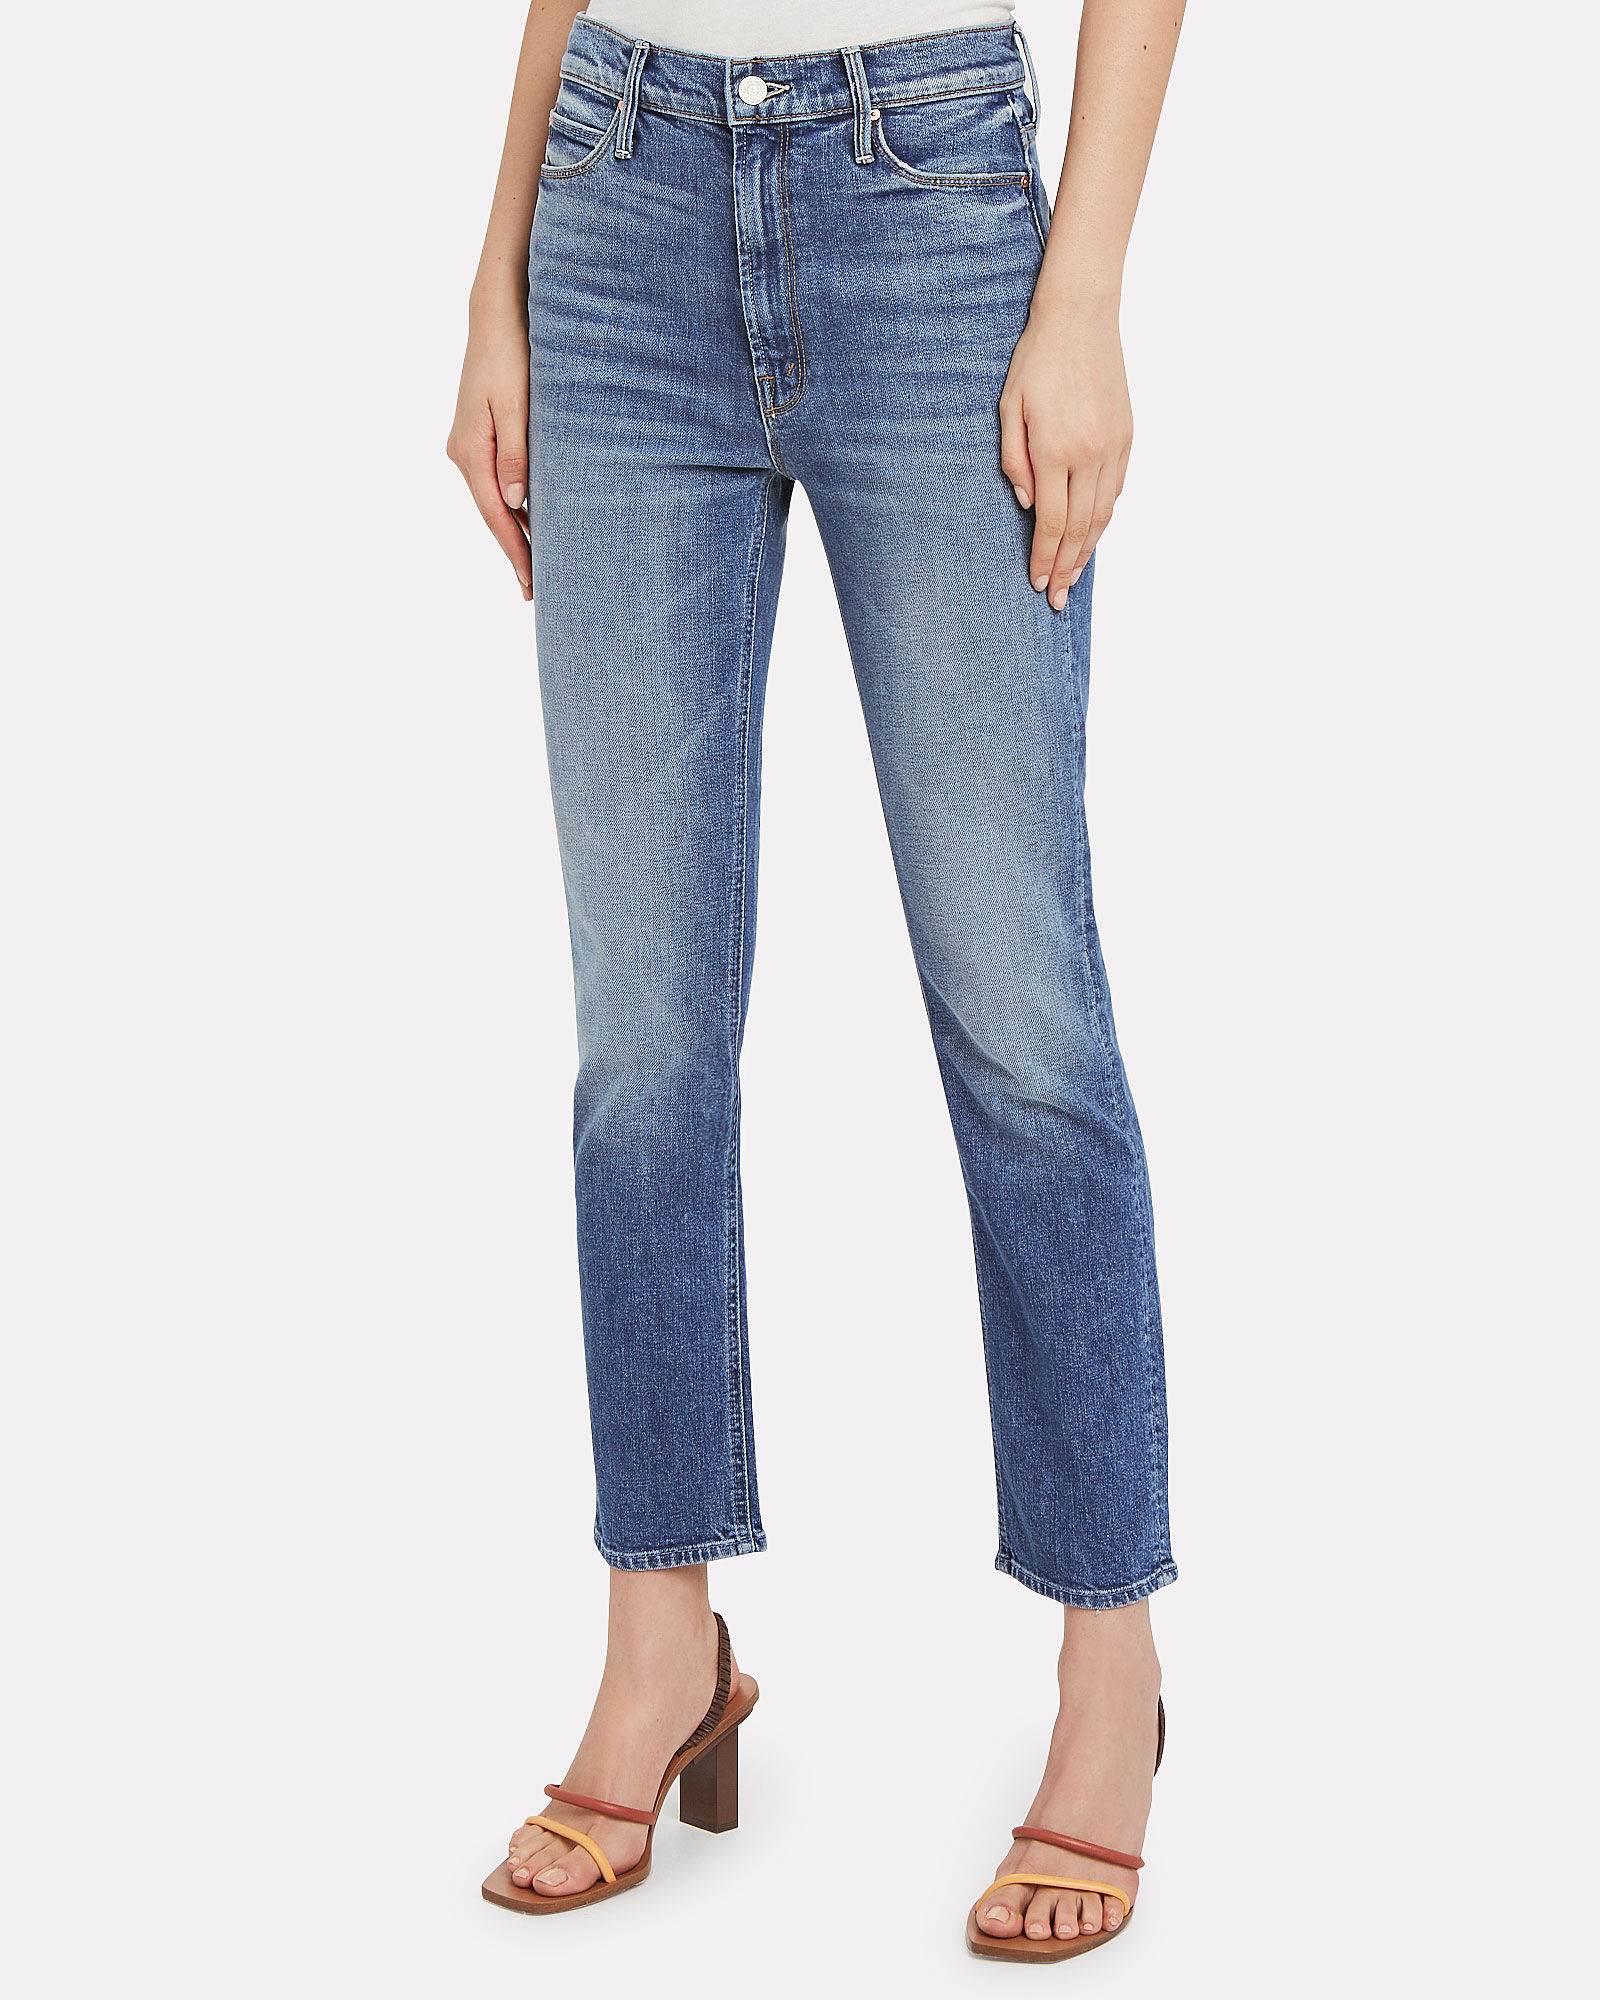 The Dazzler Slim Straight Leg Jeans, MID-BLUE DENIM, hi-res